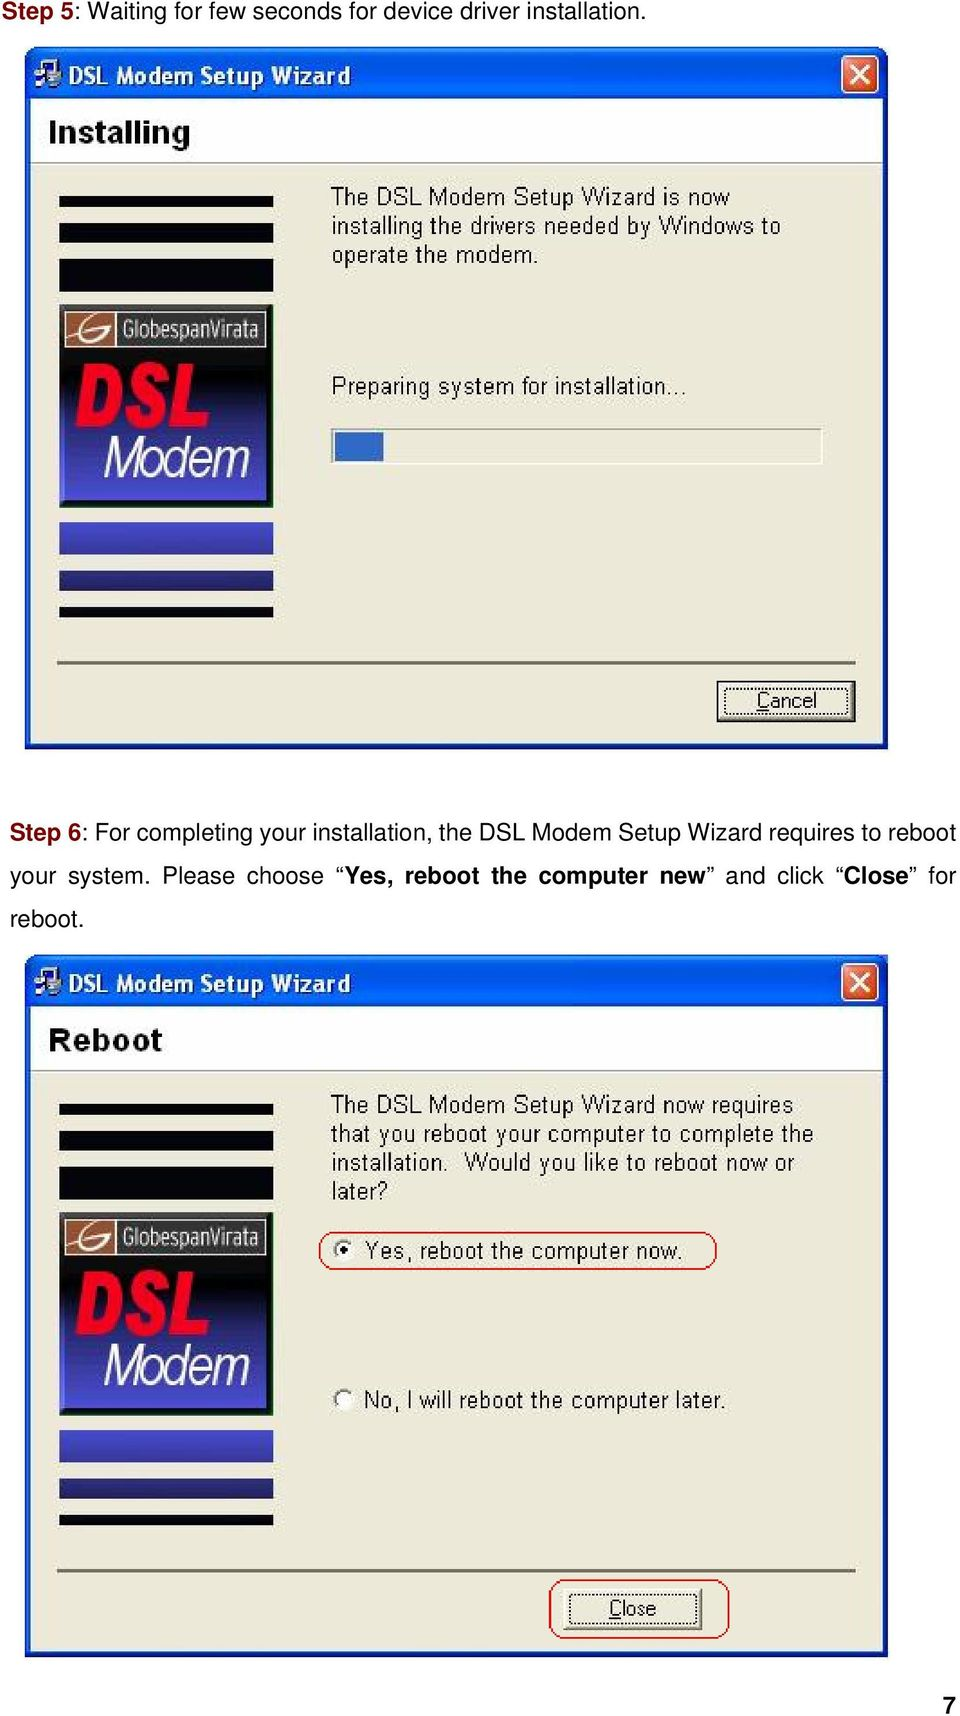 Step 6: For completing your installation, the DSL Modem